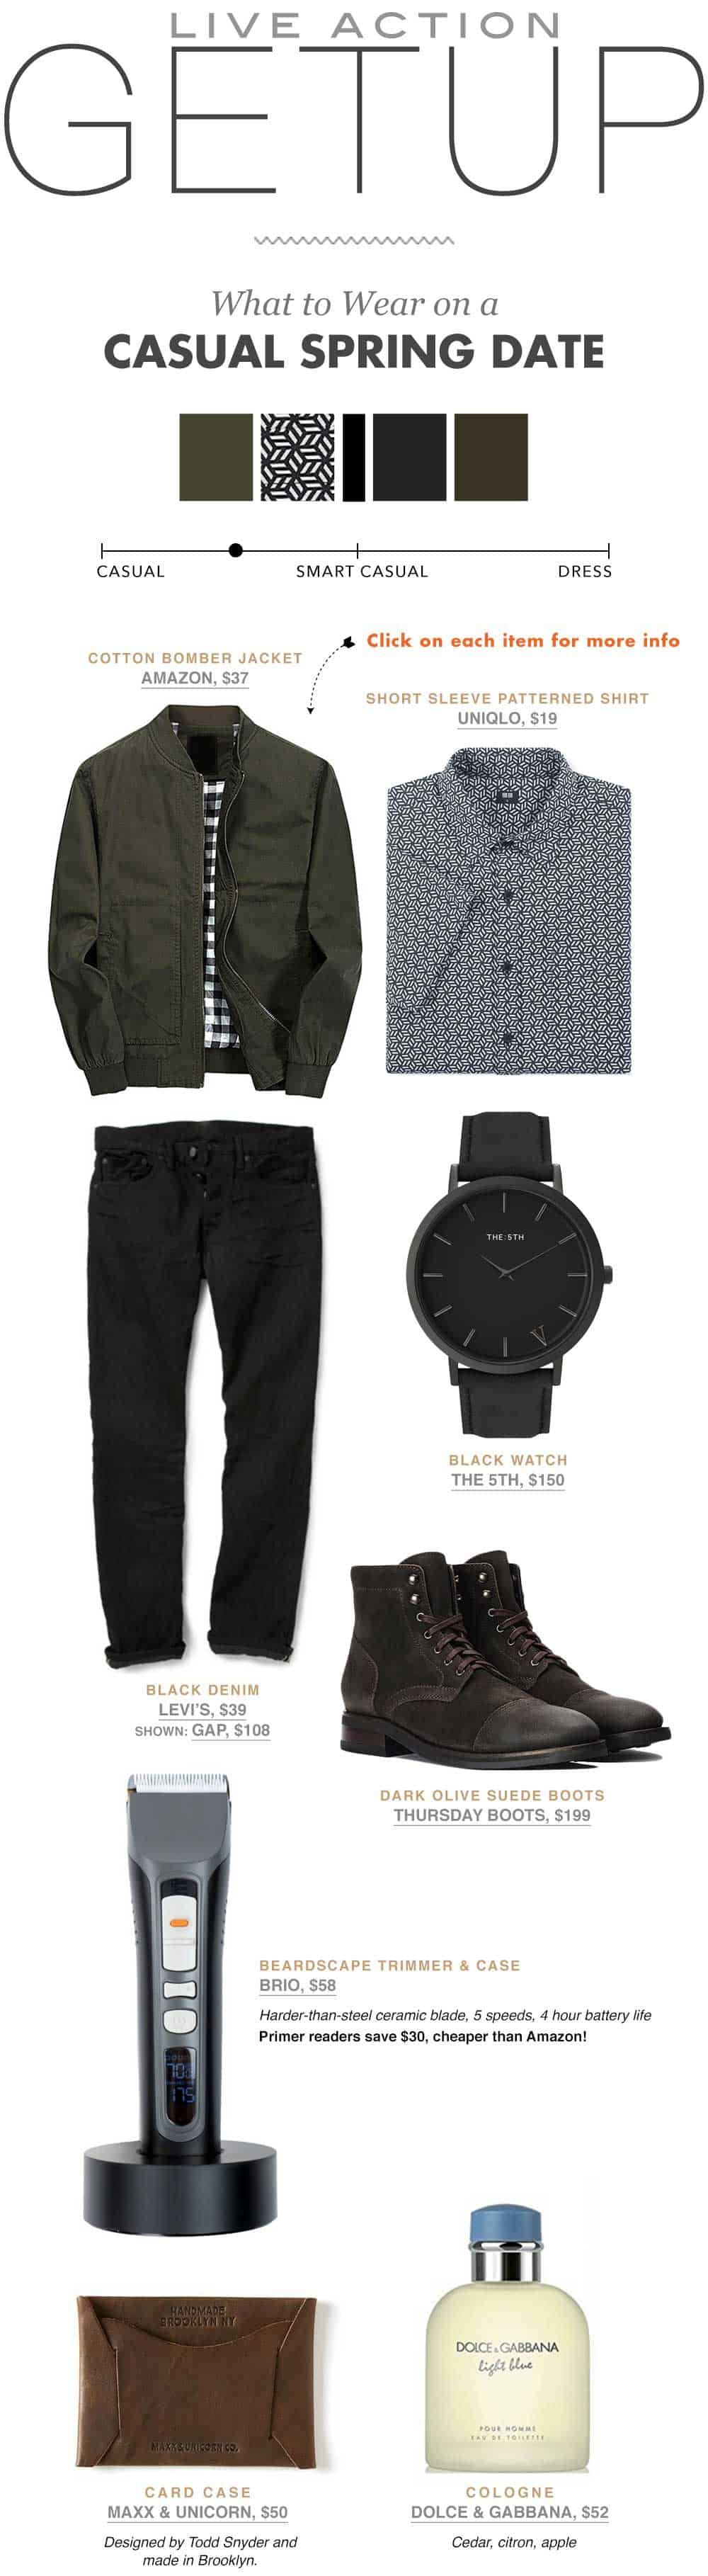 Spring Date   Casual Men's Fashion Inspiration   The Getup from Primer